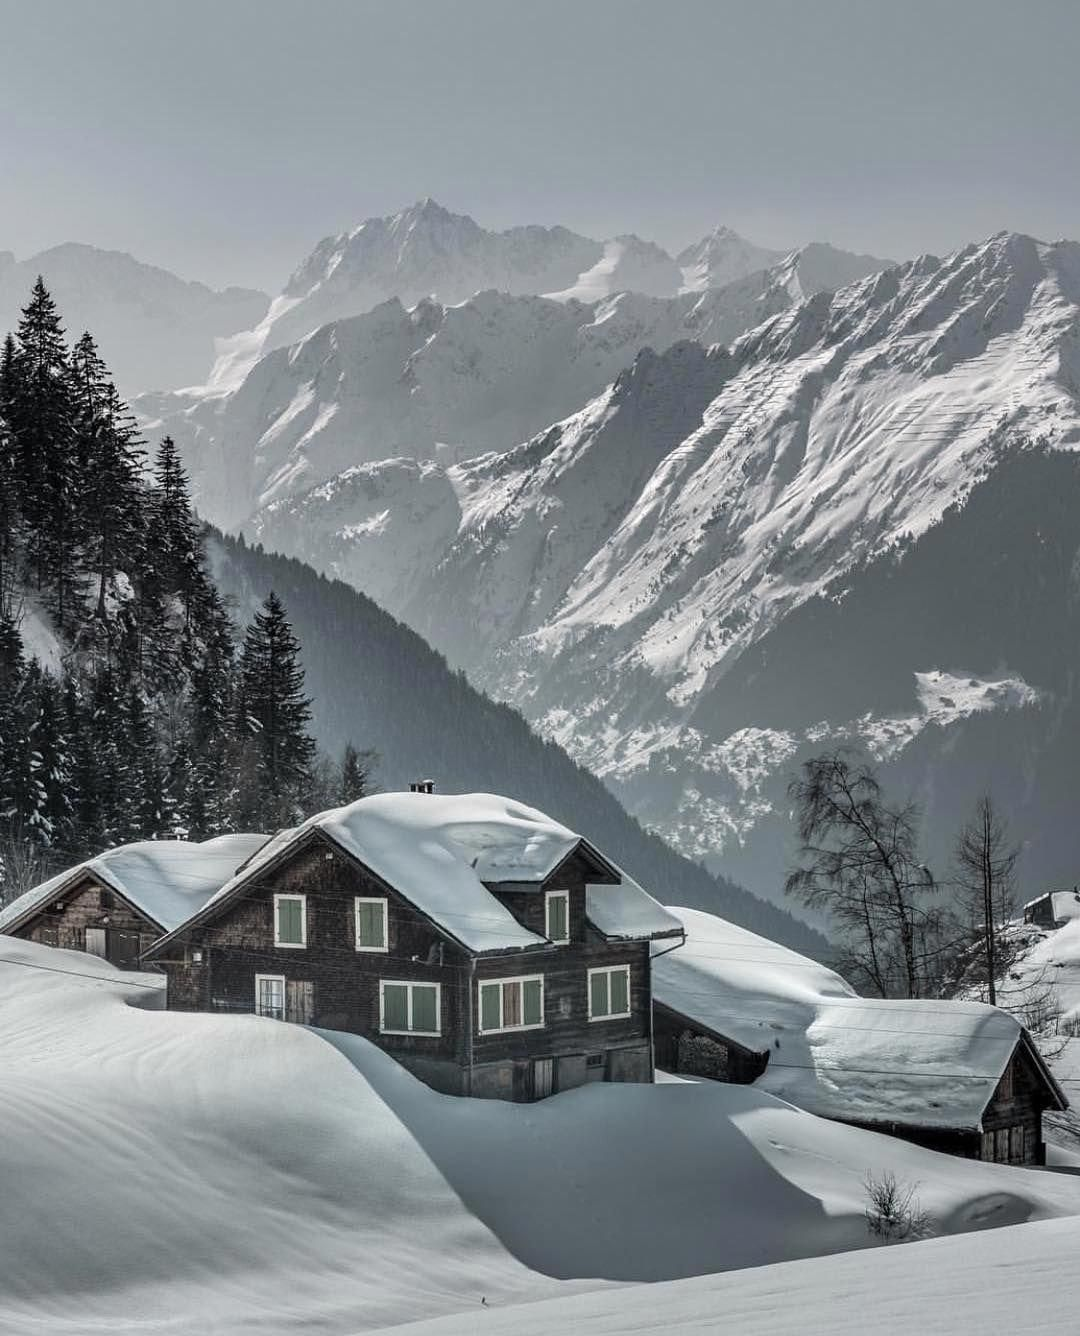 Visit The Official Ig Account If You Like The Pic Cc Myswiterland Switzerland Europe Discover Snow Journey Exp Winter Scenery Winter Scenes Winter Mountain